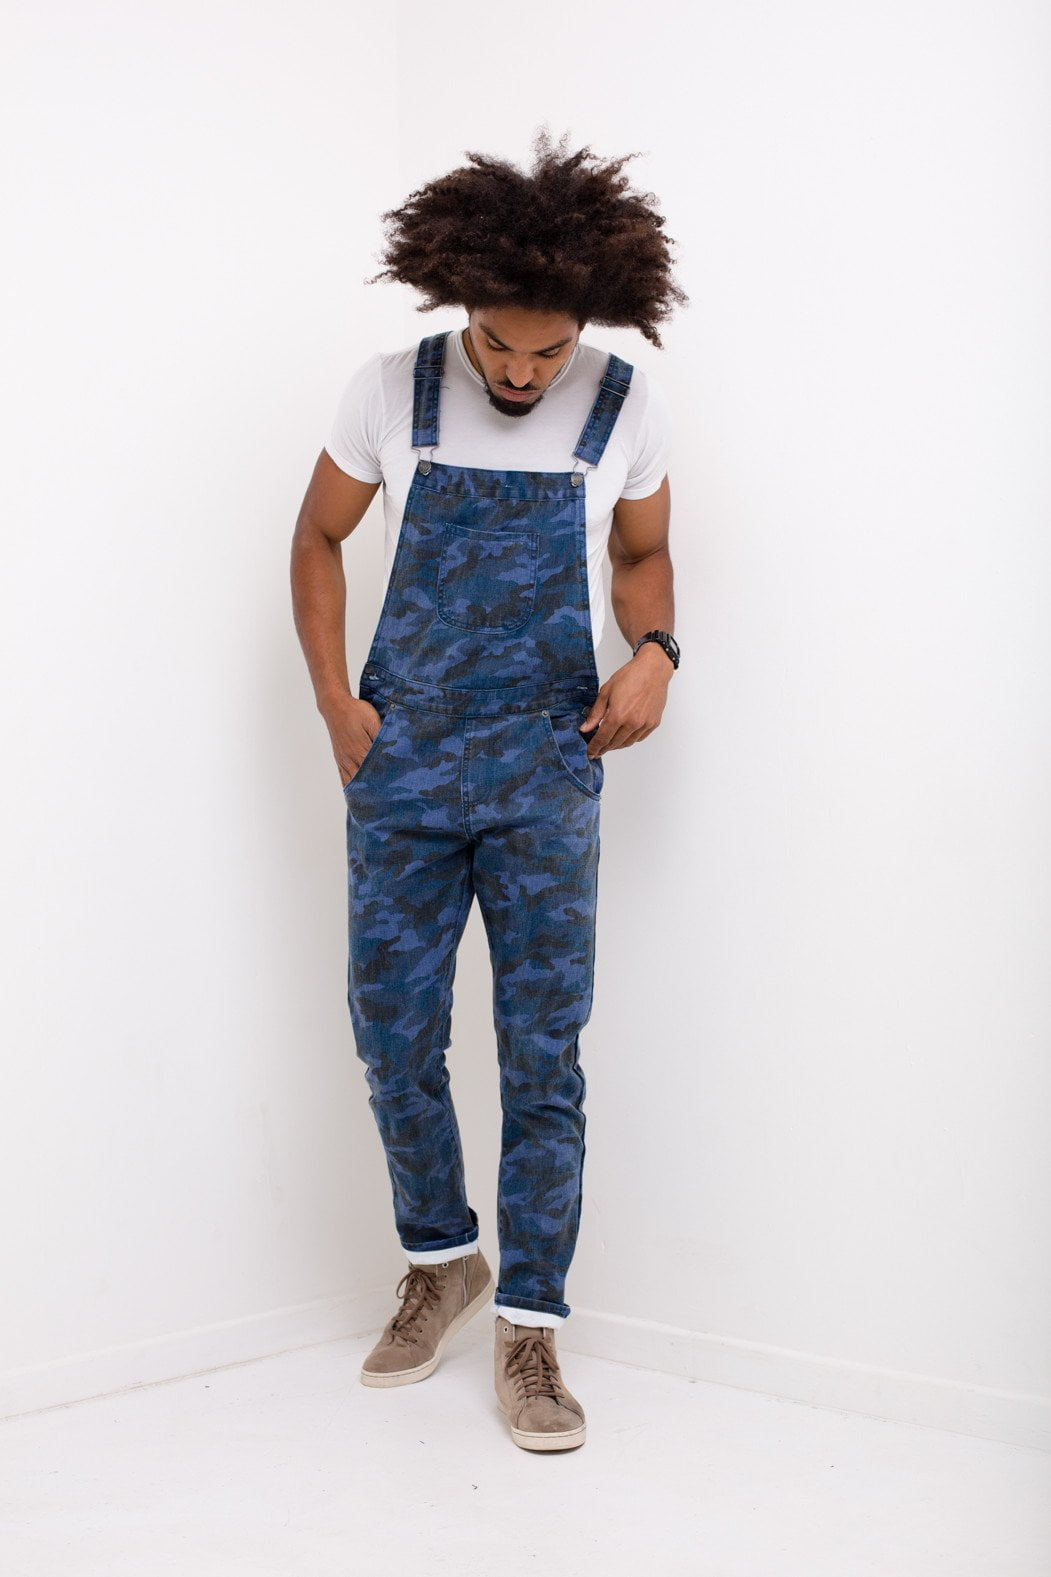 Williamsburg Navy Camo Denim Dungaree - Liquor N Poker  Liquor N Poker